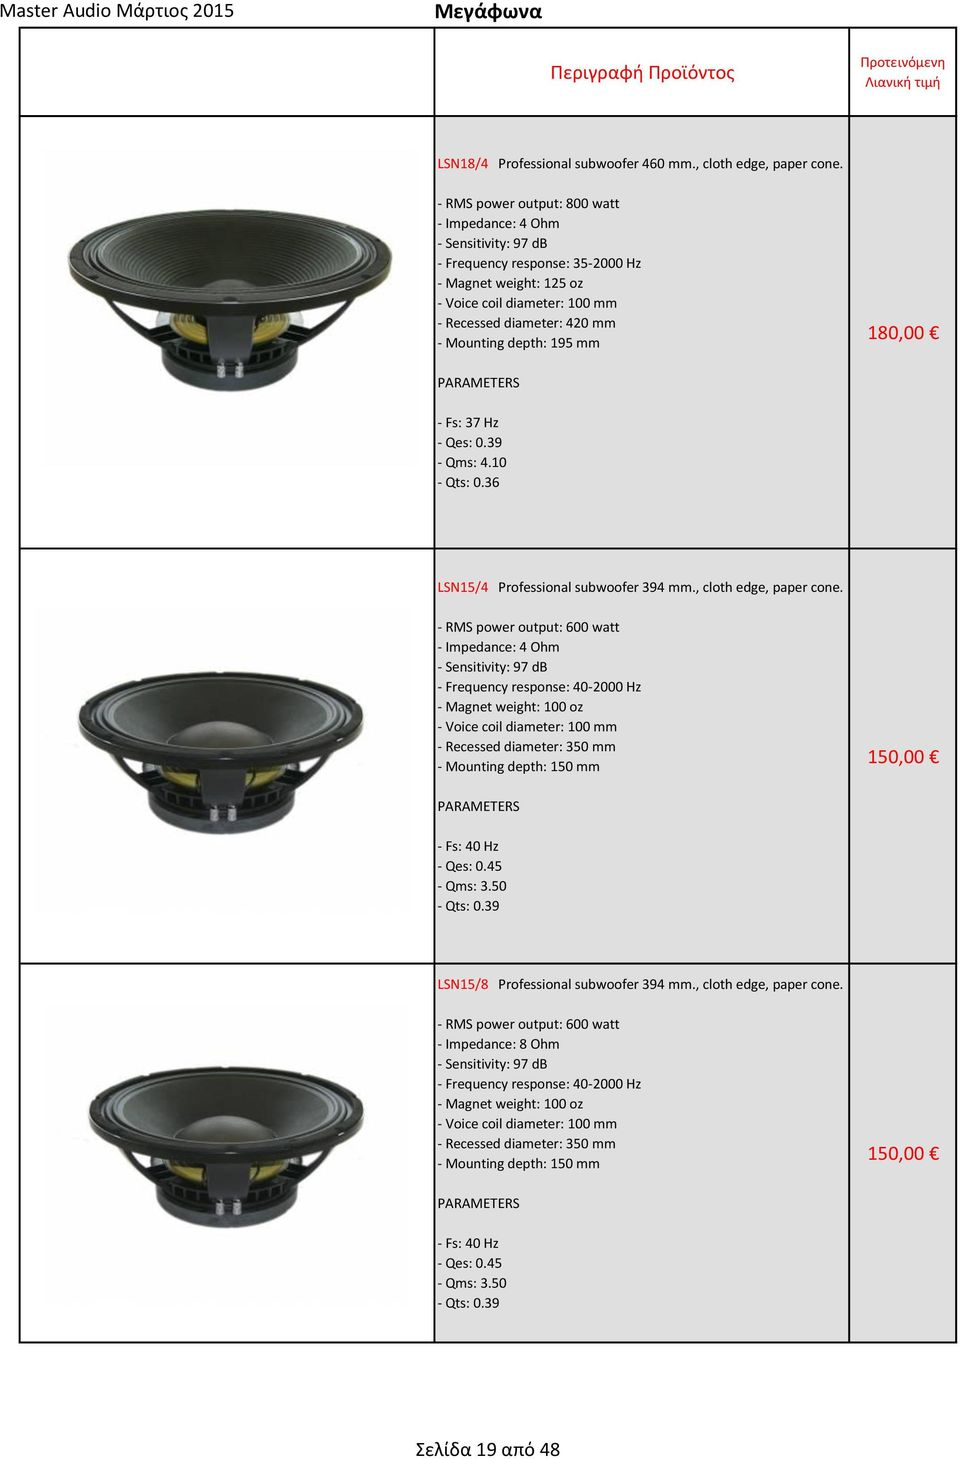 depth: 195 mm 180,00 PARAMETERS - Fs: 37 Hz - Qes: 0.39 - Qms: 4.10 - Qts: 0.36 LSN15/4 Professional subwoofer 394 mm., cloth edge, paper cone.